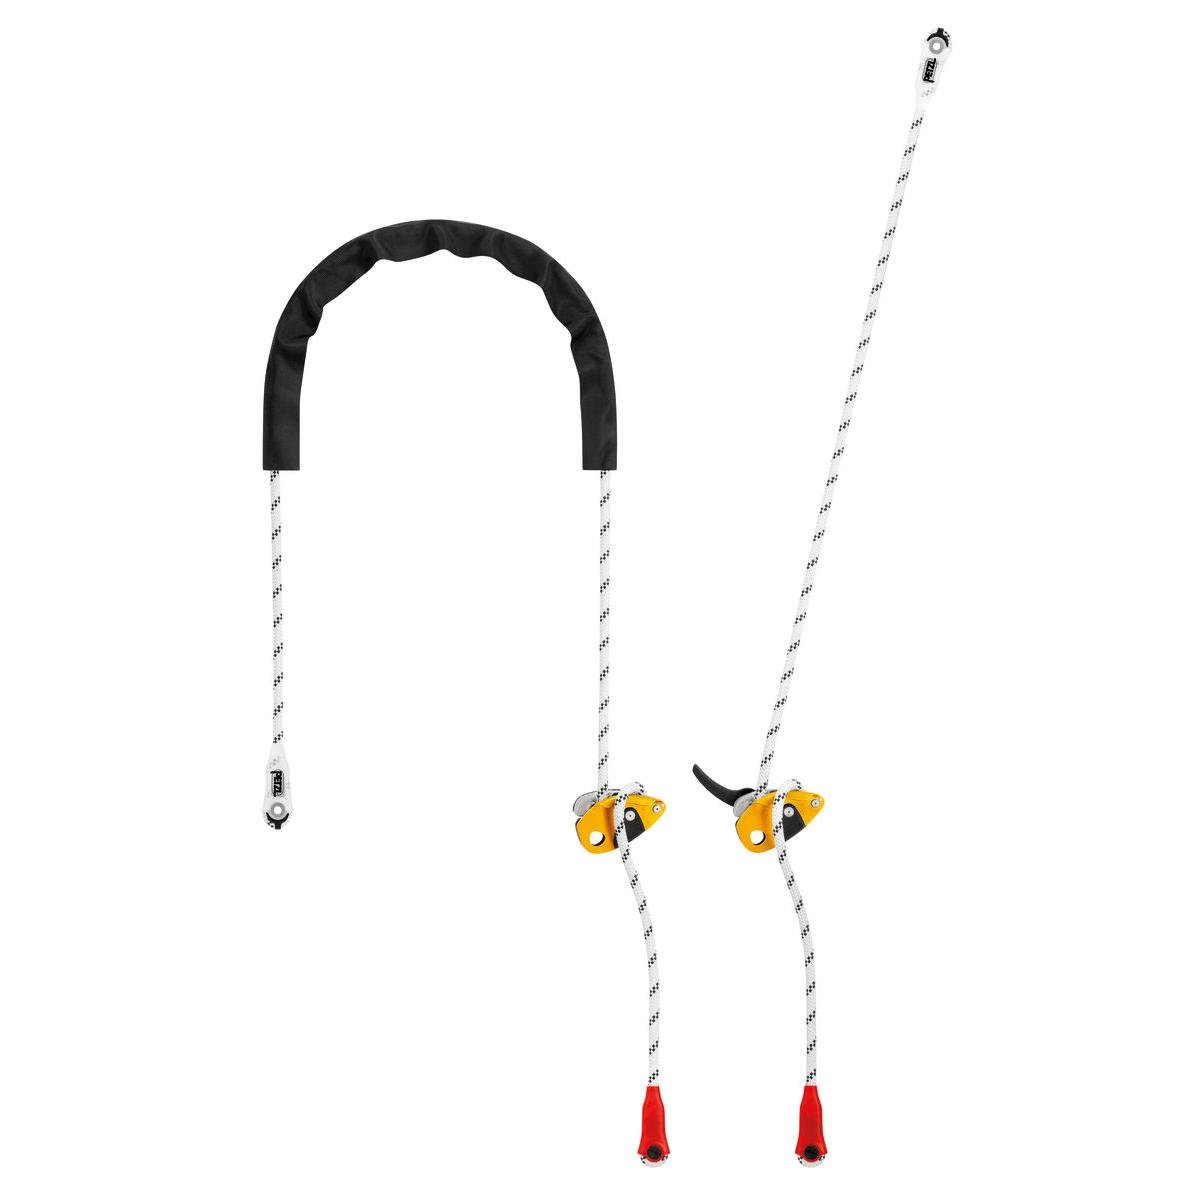 PETZL Grillon Positioning Lanyard 4m by PETZL